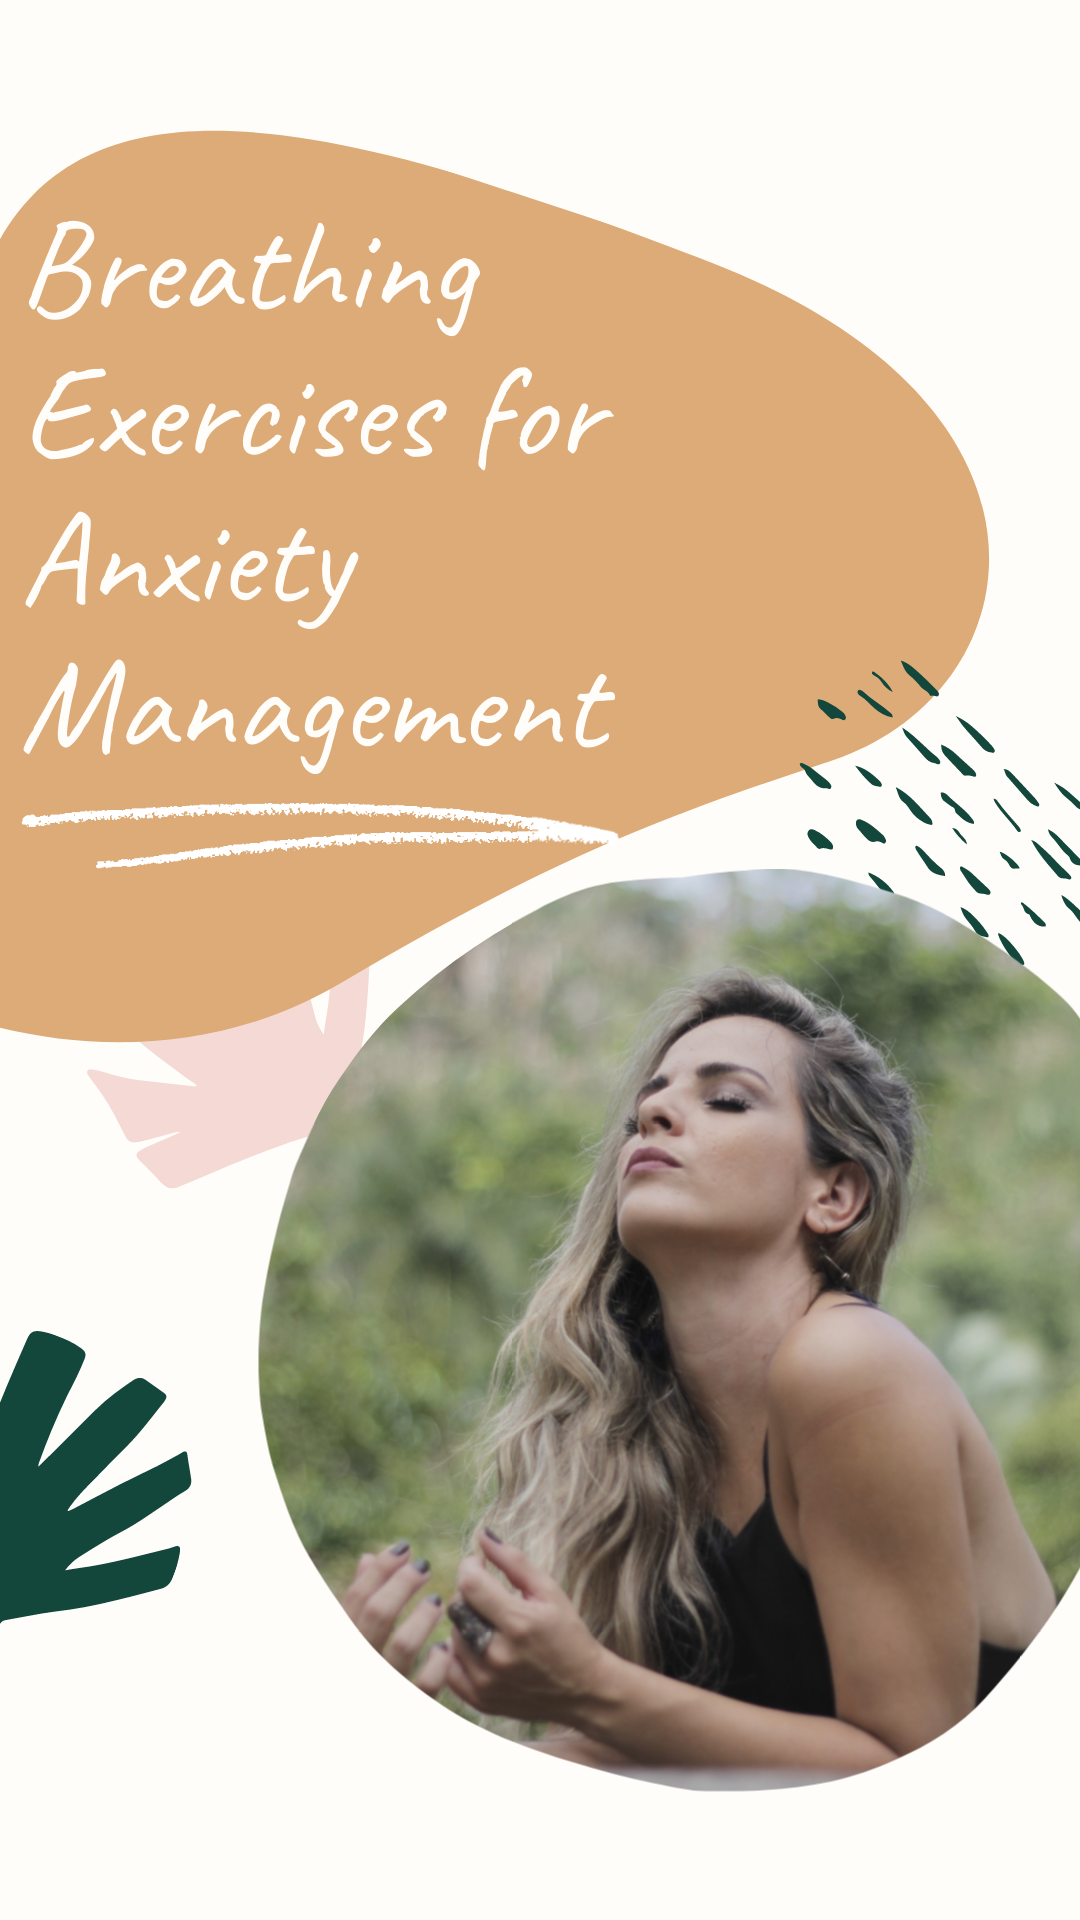 breathing exercises for anxiety management